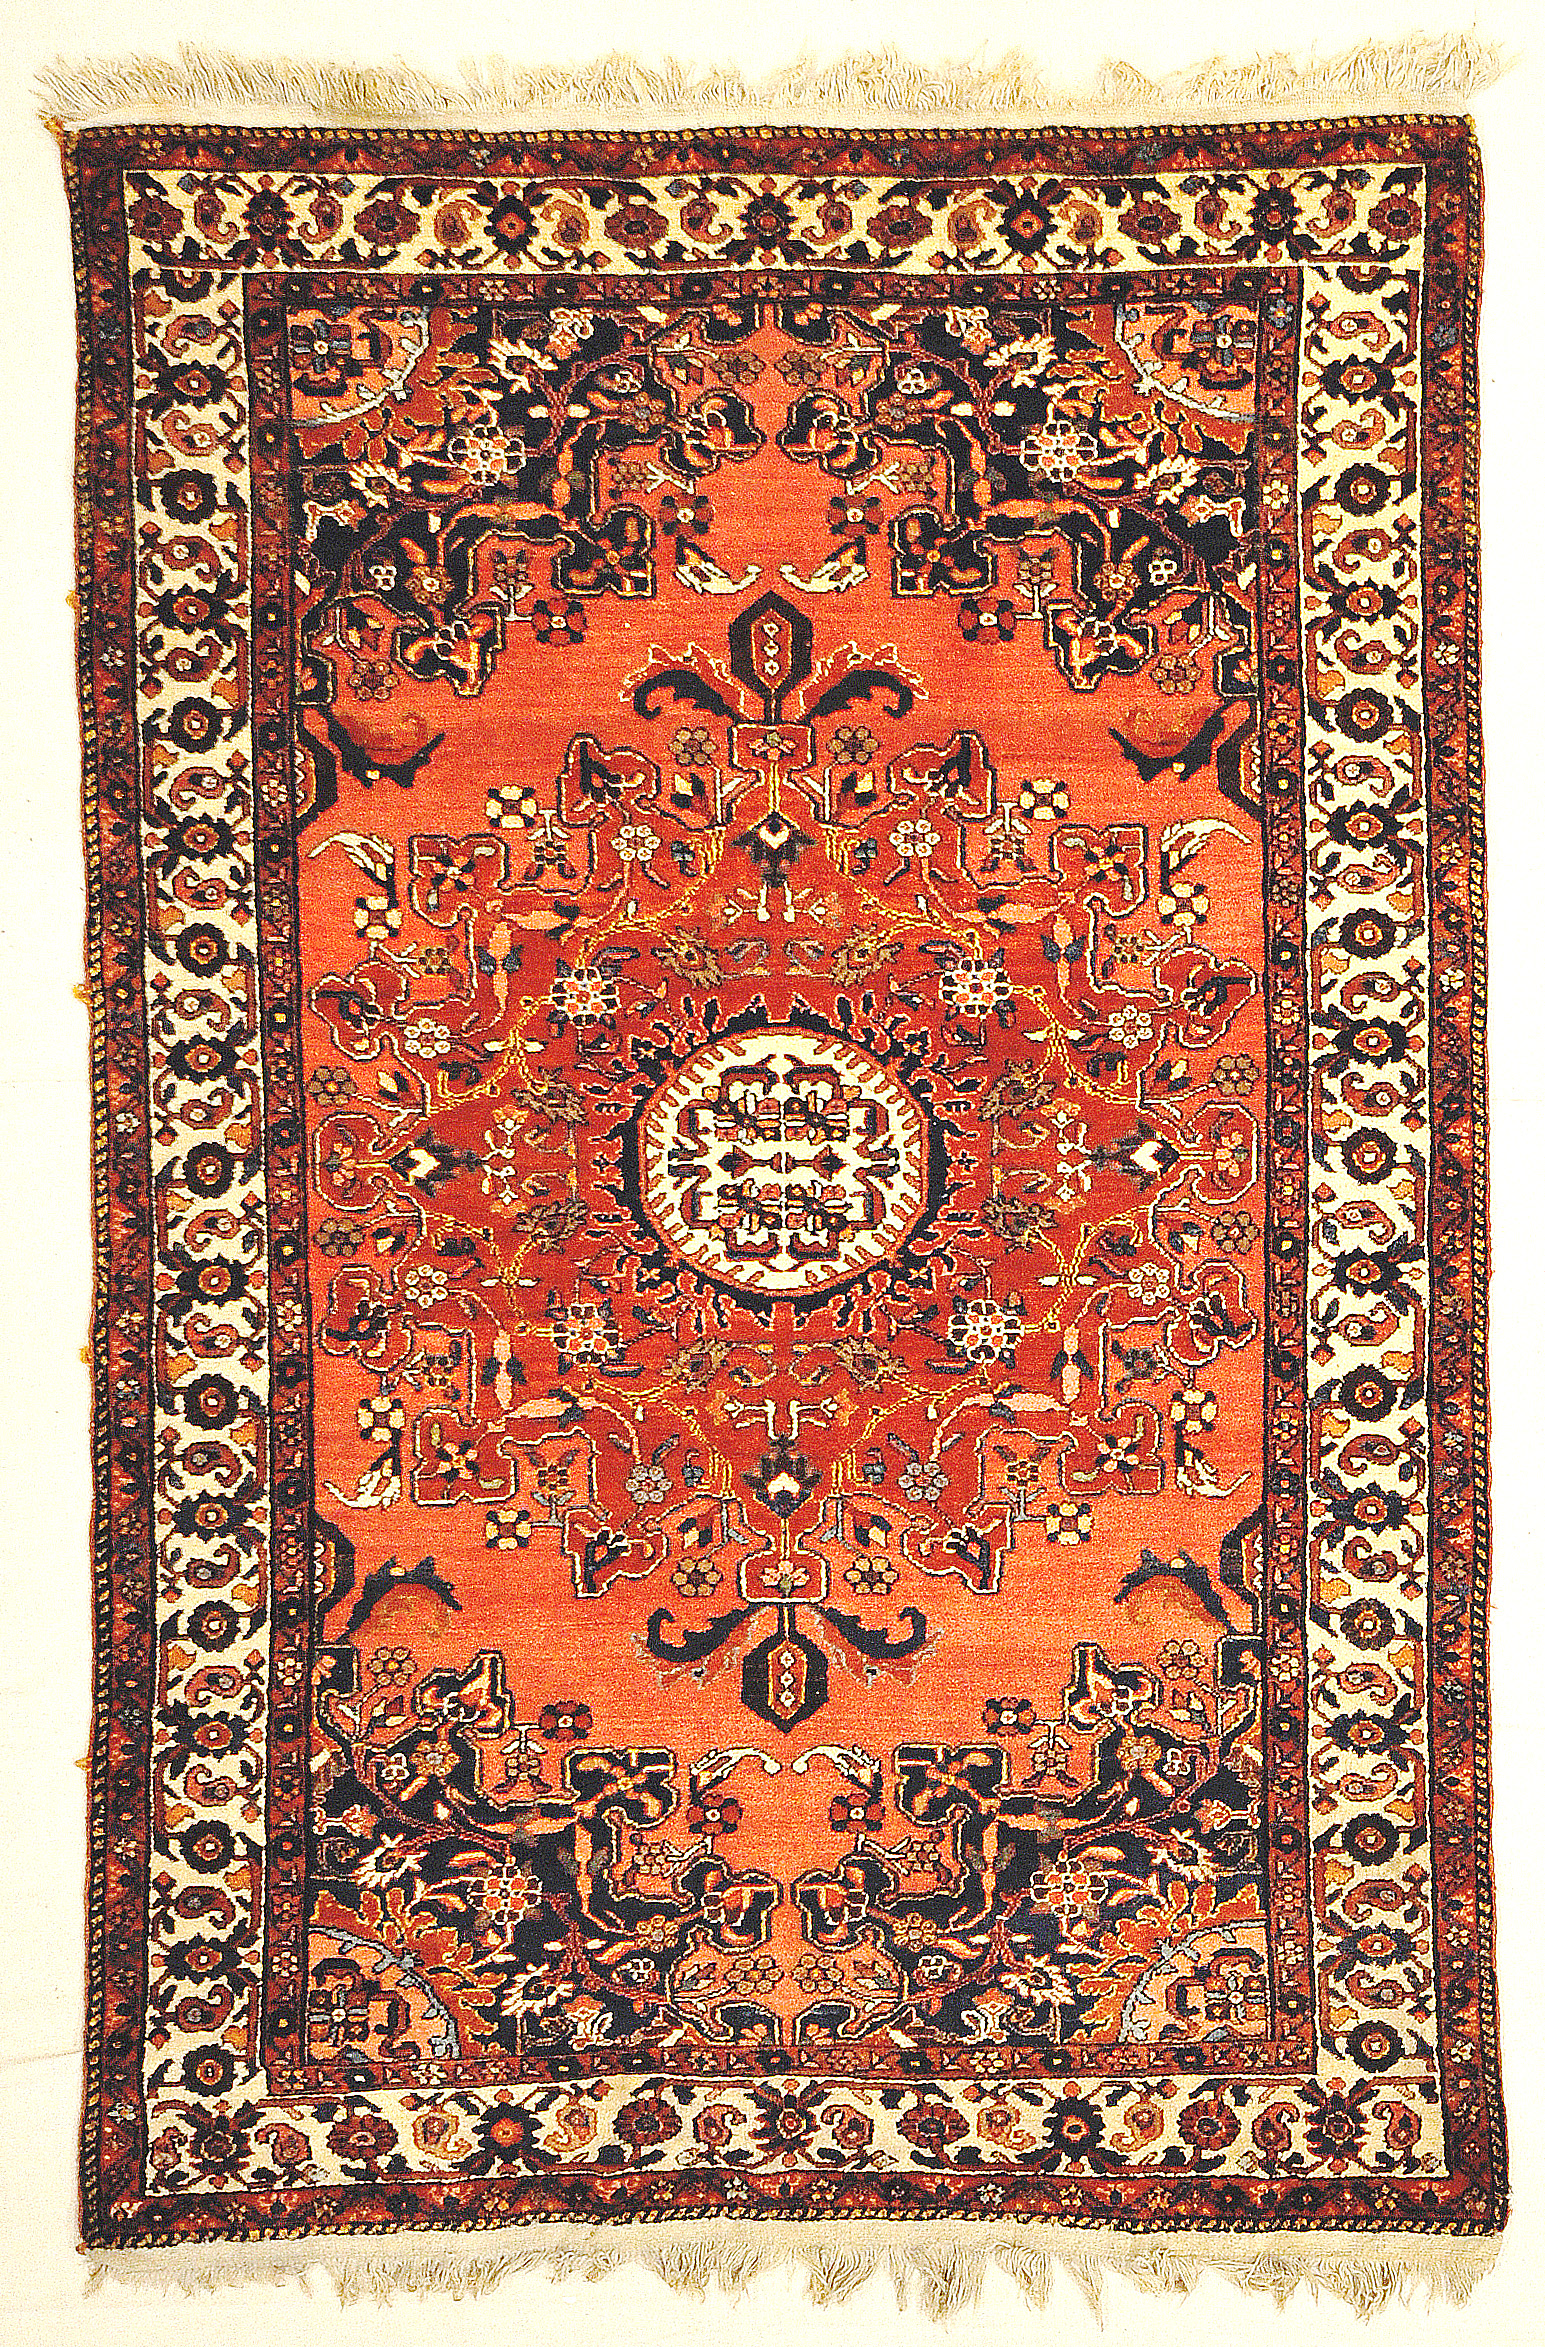 Antique Persian Josan Mint Condition All Natural Dyes Genuine Authentic Woven Carpet Art Santa Barbara Design Center Rugs and More